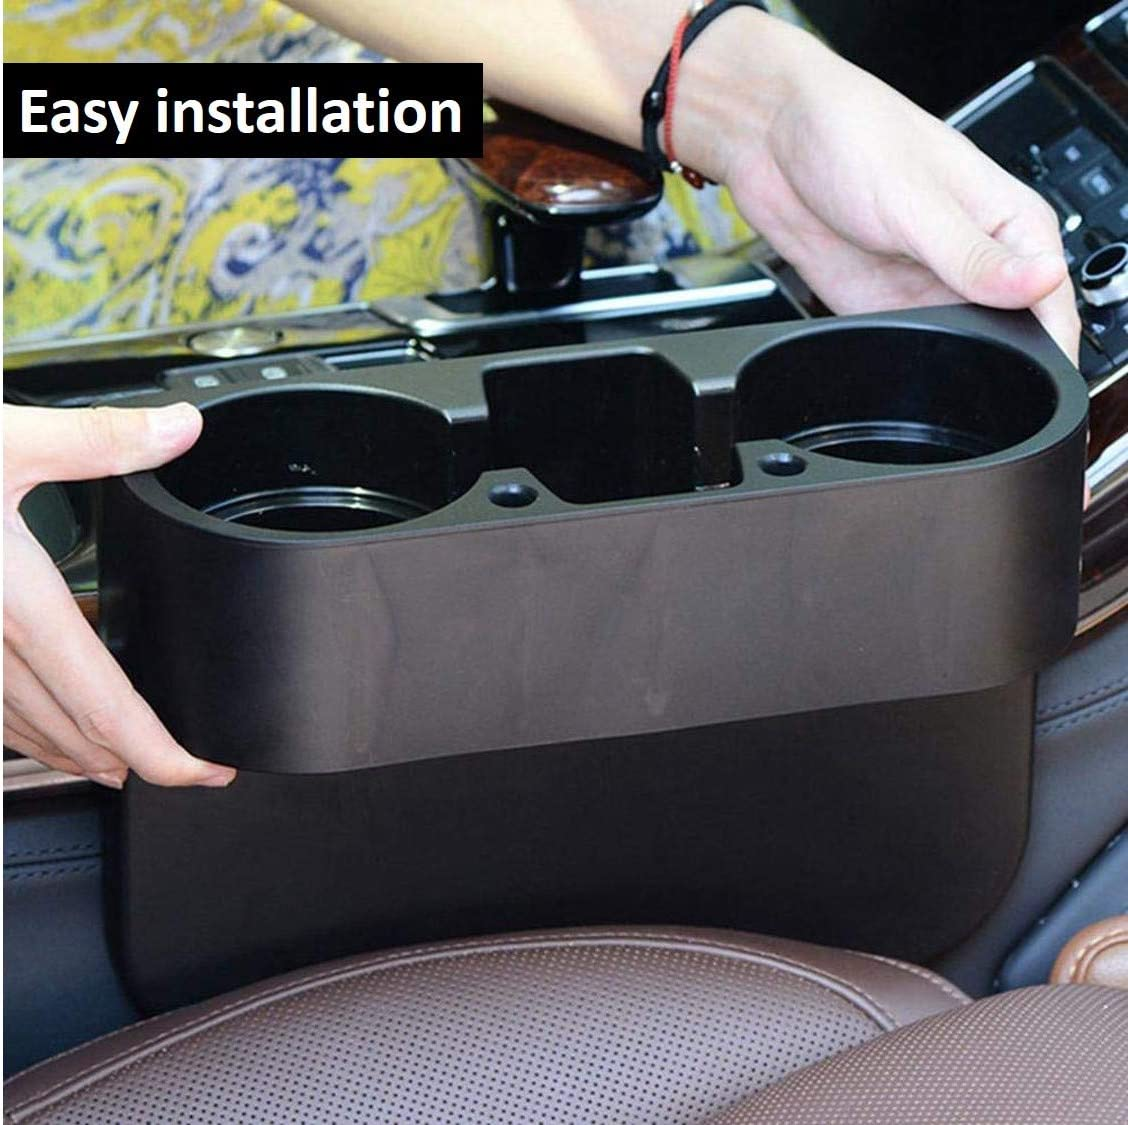 Car Seat Cup Holder Auto Cup Holders for Car Cup Holder for Car Black Car Cup Holders Cupholder for Cars Car Cup Holder Organizer